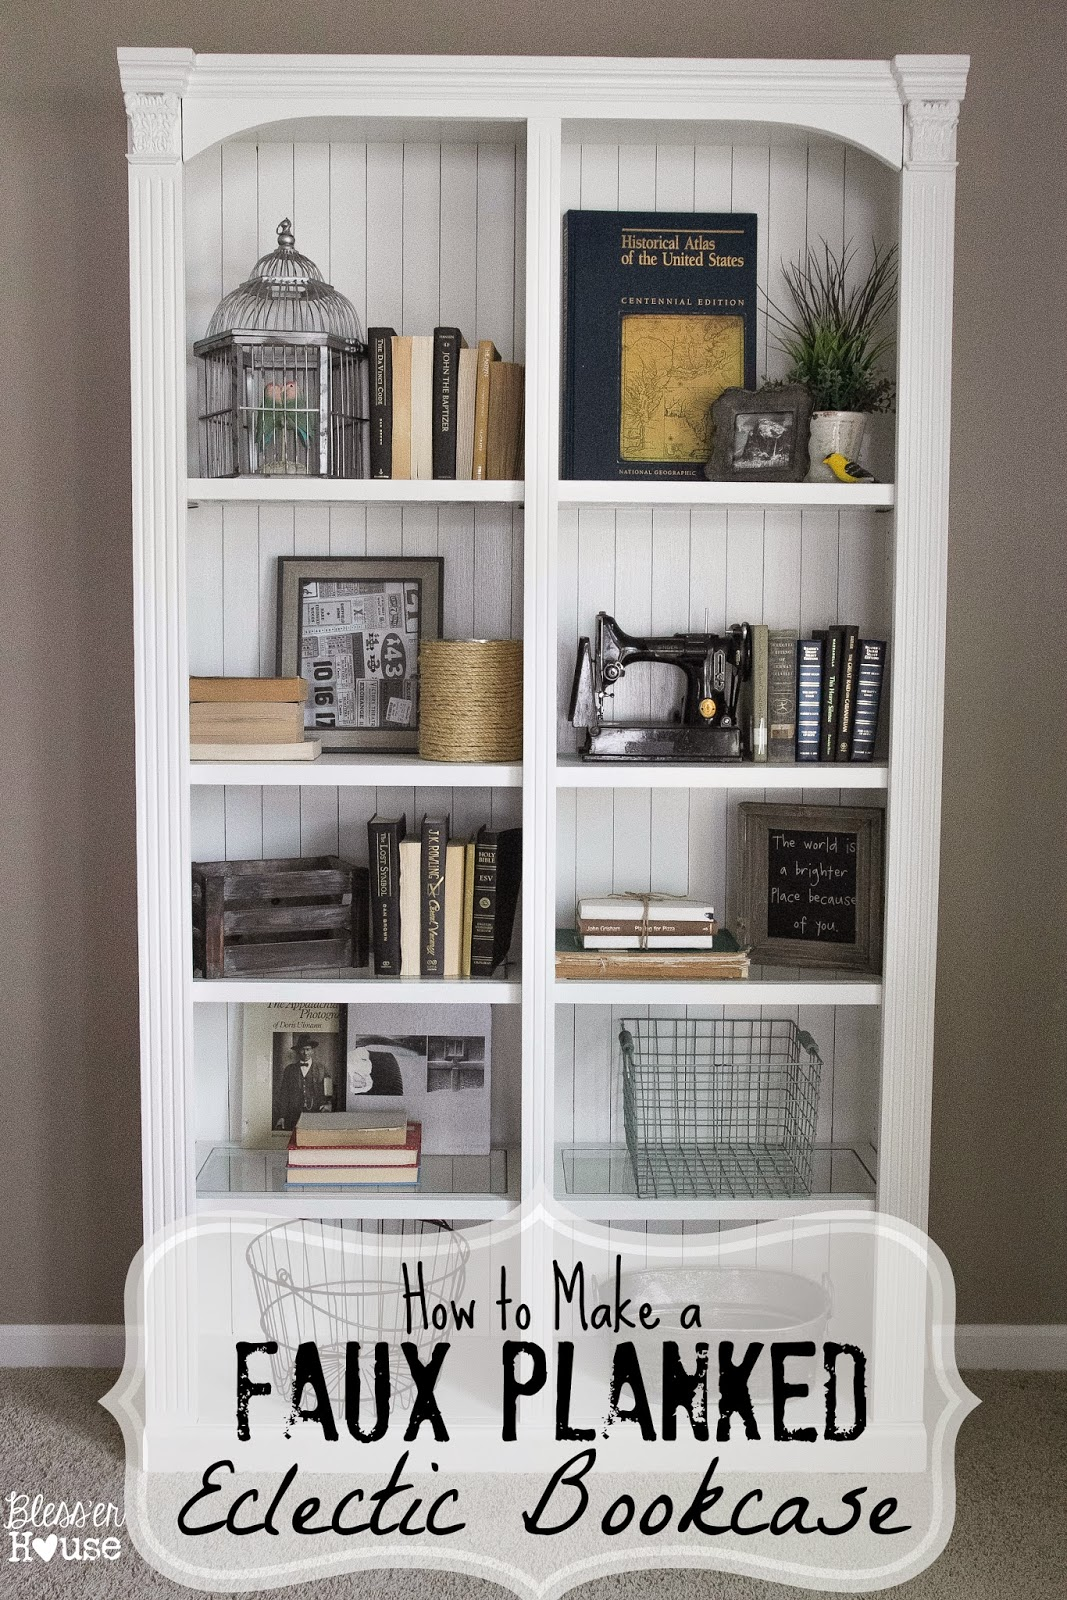 faux-planked-eclectic-bookcase